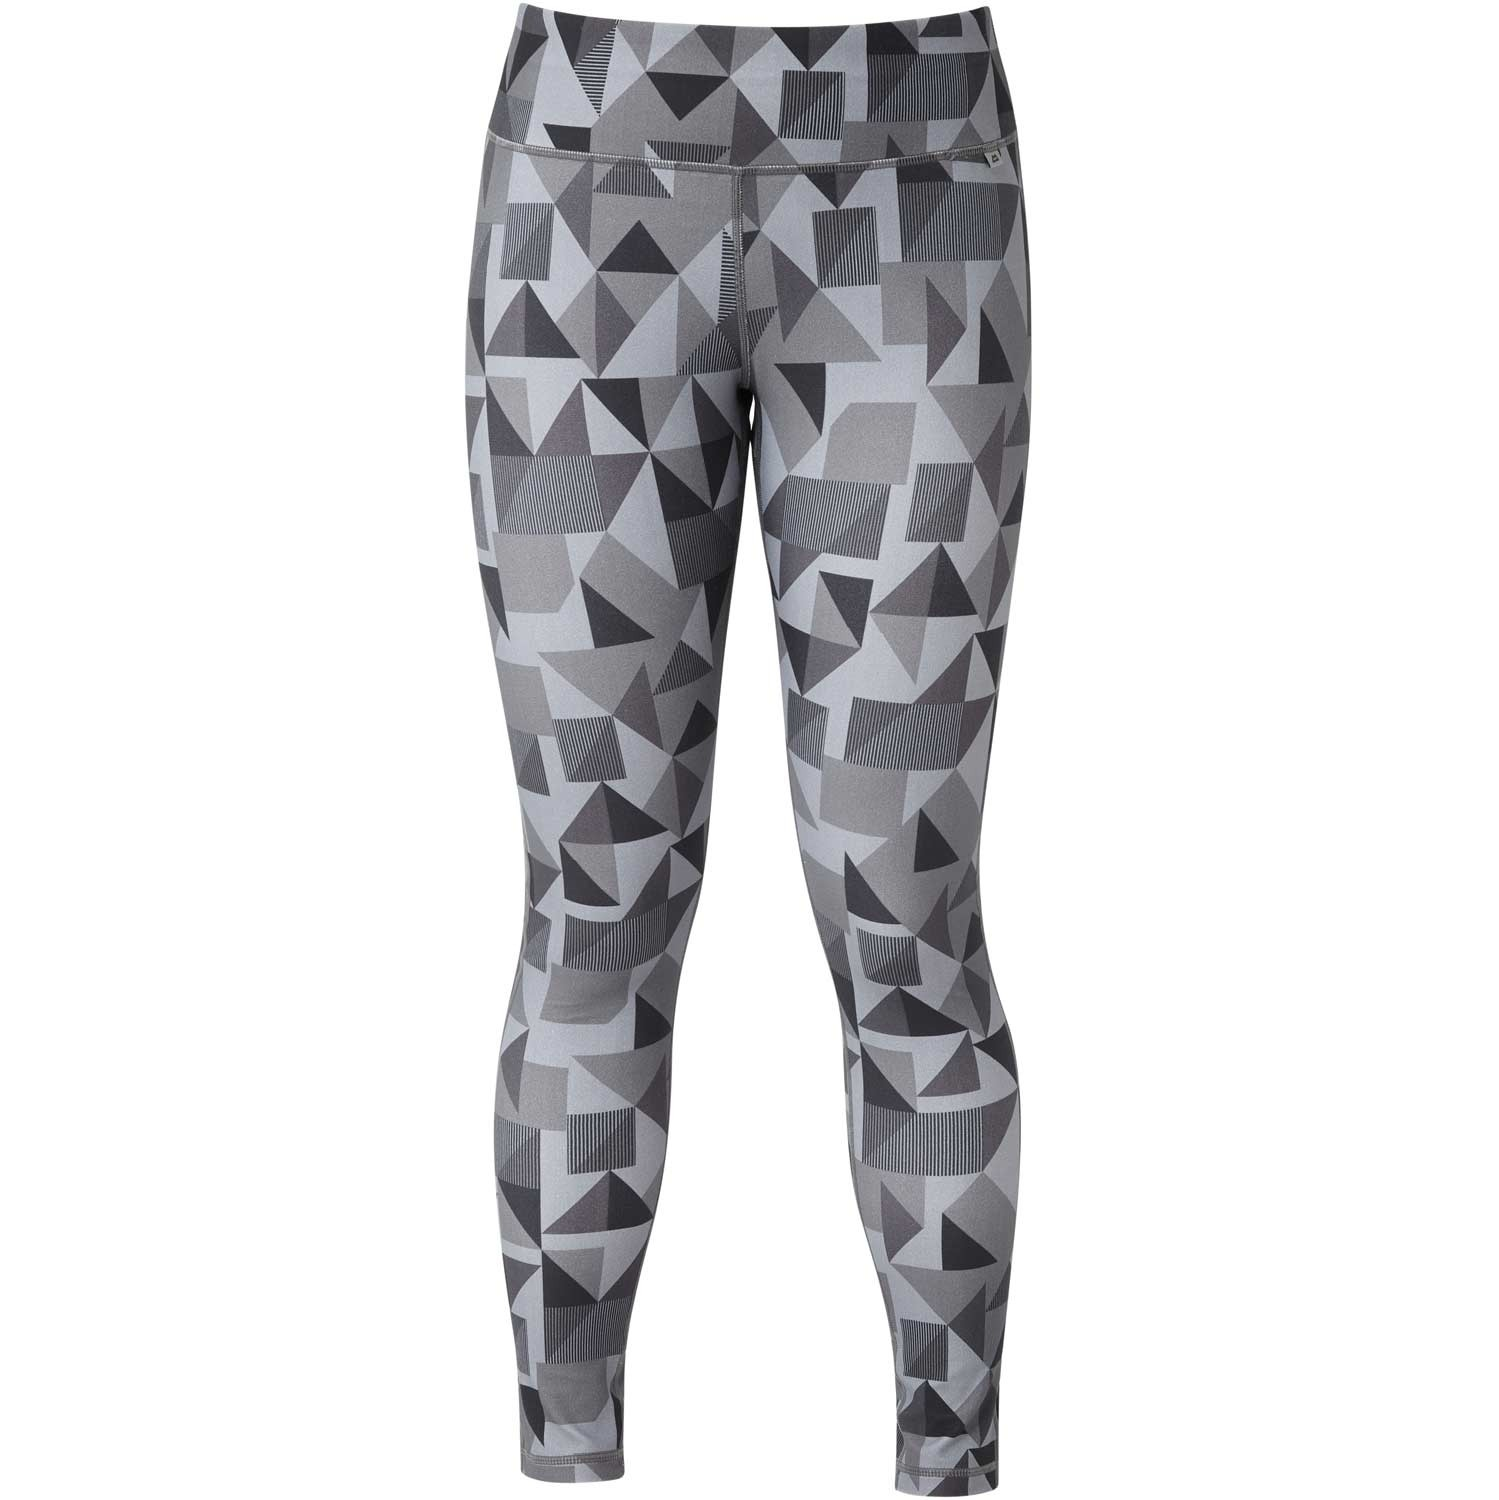 Mountain Equipment Cala Women's Leggings - Steel